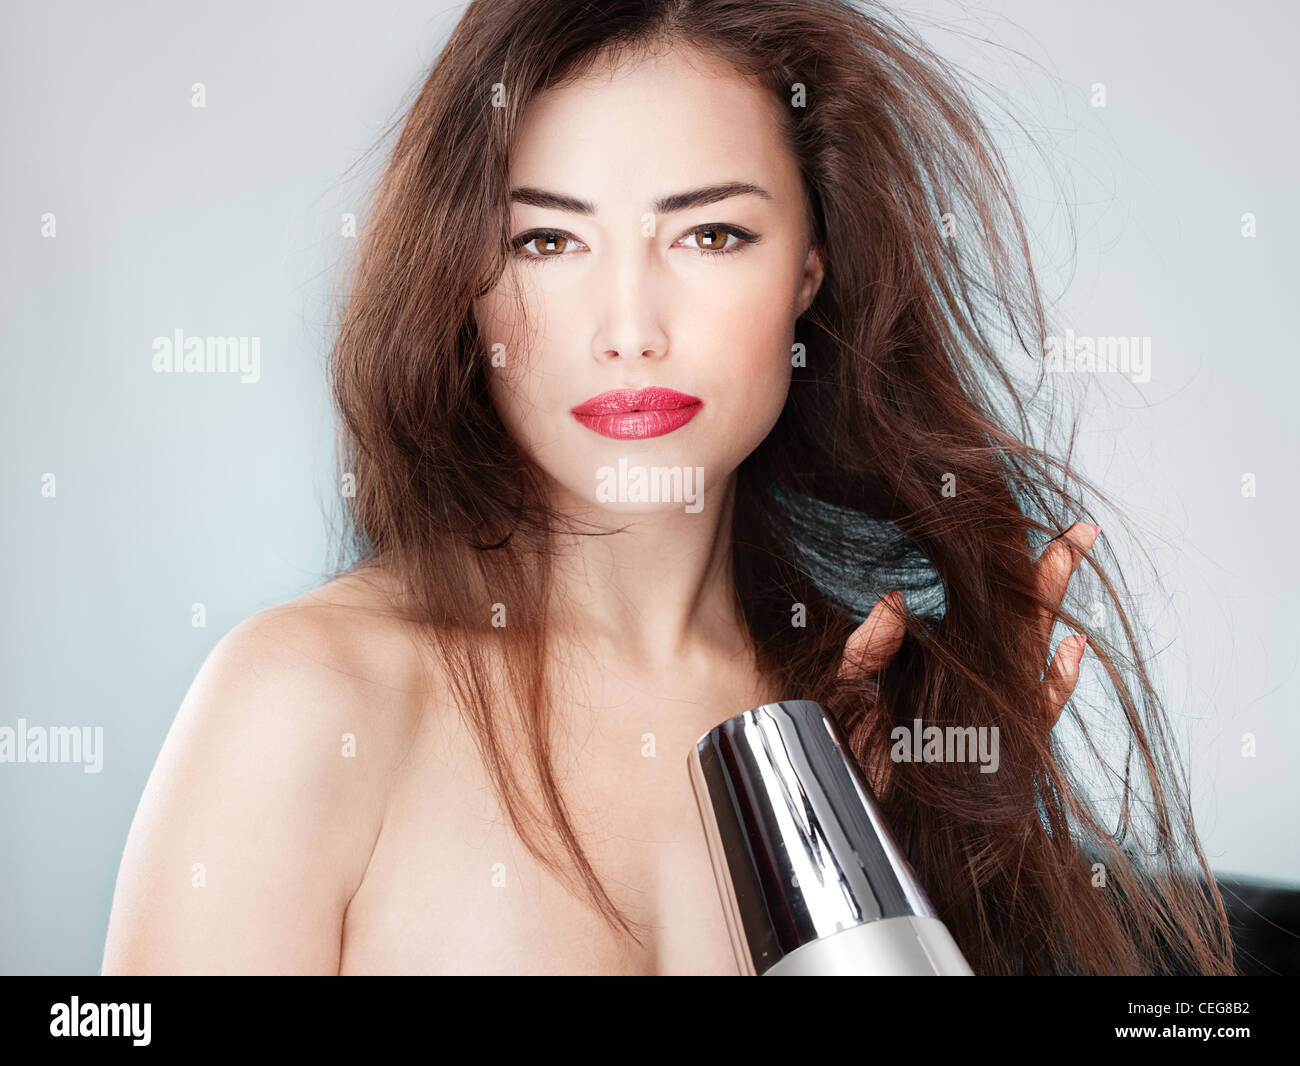 woman with long hair holding blow dryer - Stock Image